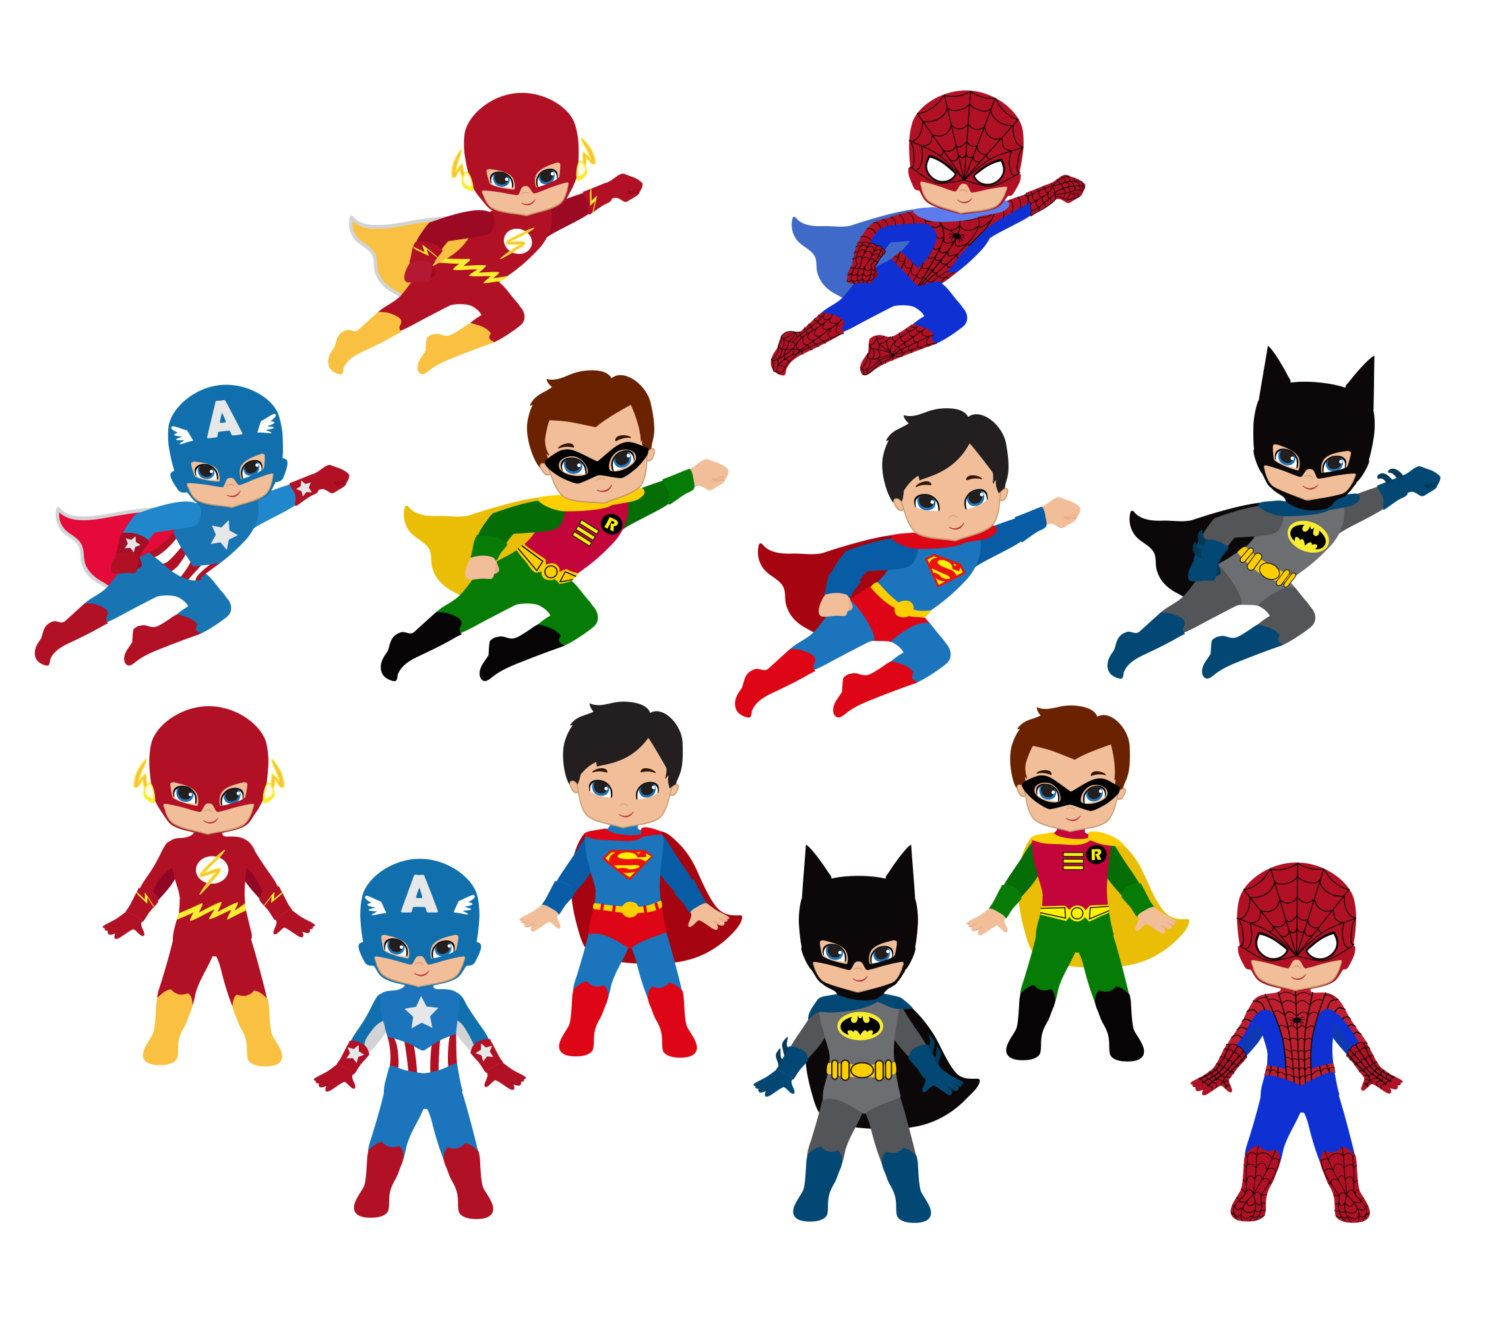 Superhero clipart in action image freeuse free superhero clipart | Fonts/Clipart freebies | Superhero clipart ... image freeuse